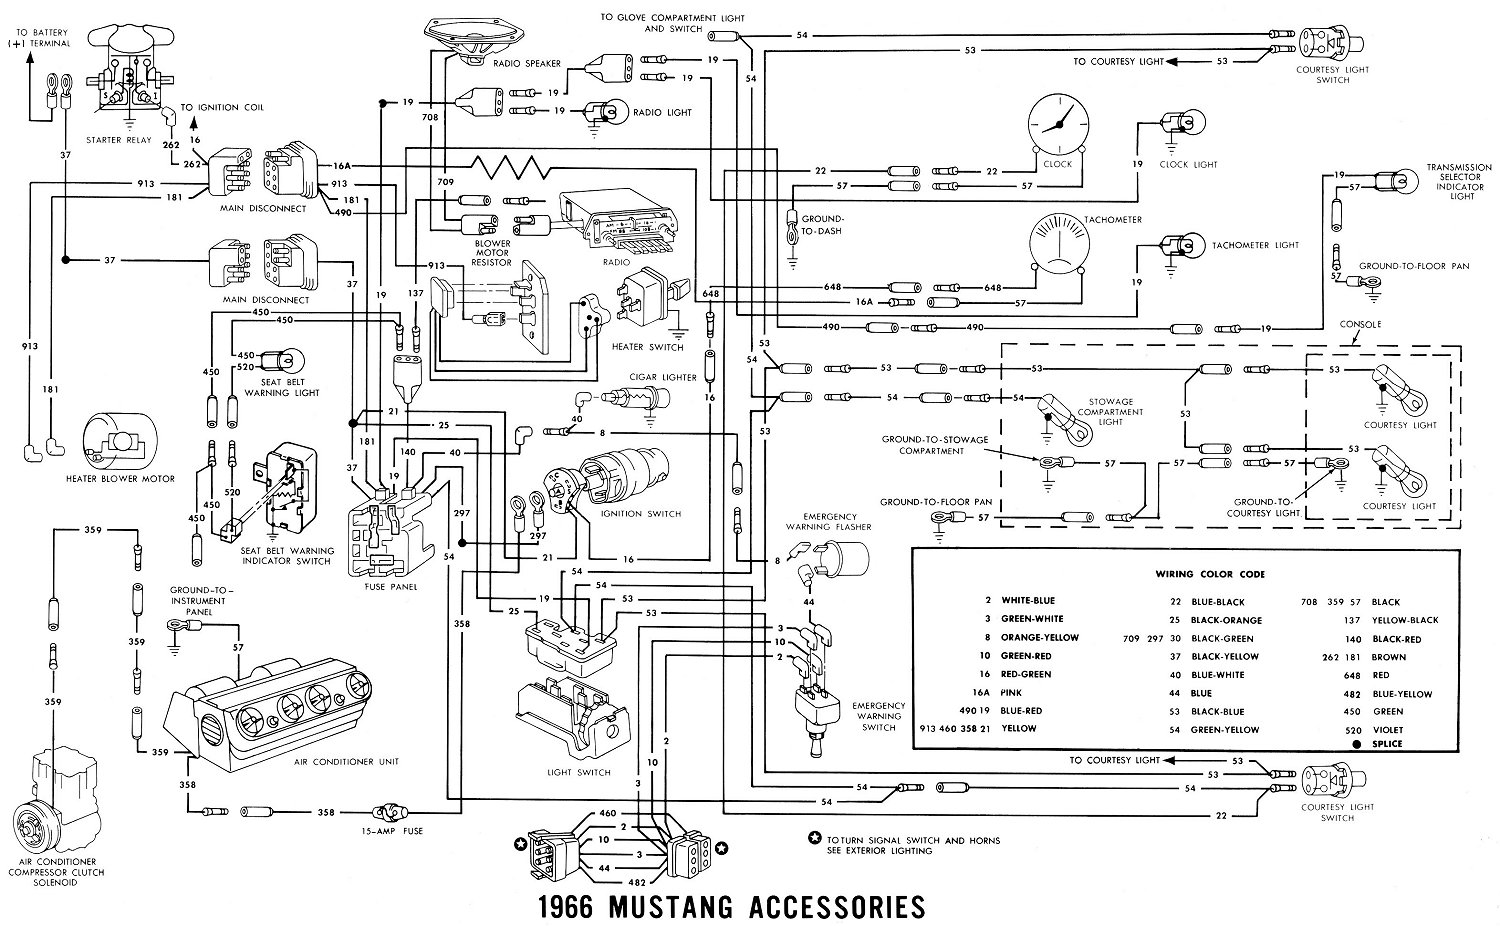 66acces1 1966 mustang wiring diagrams average joe restoration 1966 mustang wiring diagrams at webbmarketing.co